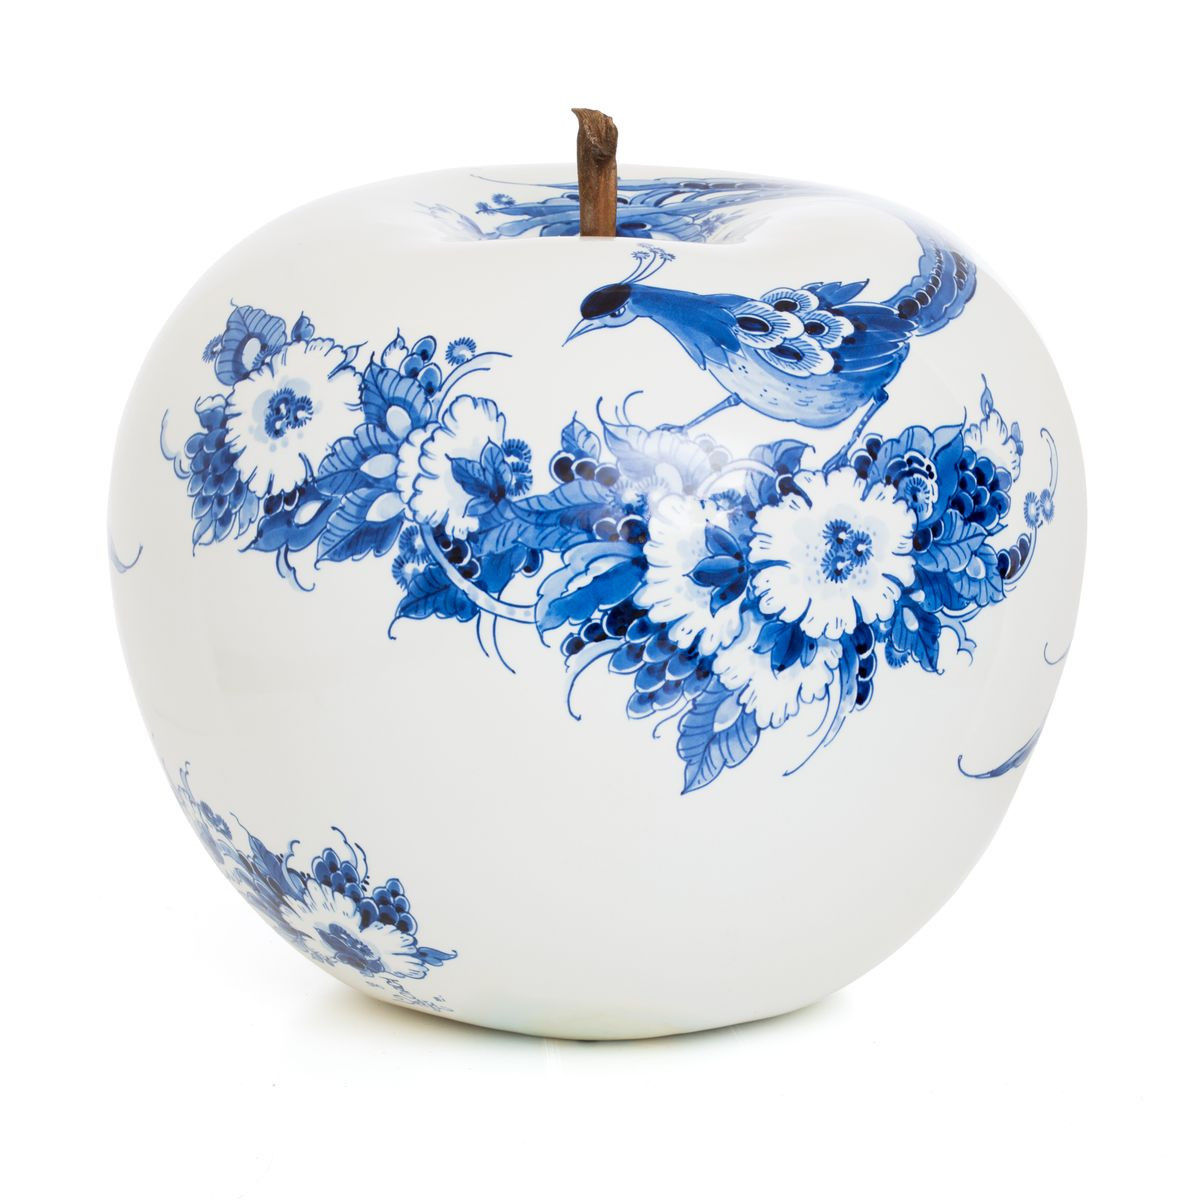 royal delft tulip vase of peacock hand painted apple by sabine struycken for royal delft for intended for peacock hand painted apple by sabine struycken for royal delft